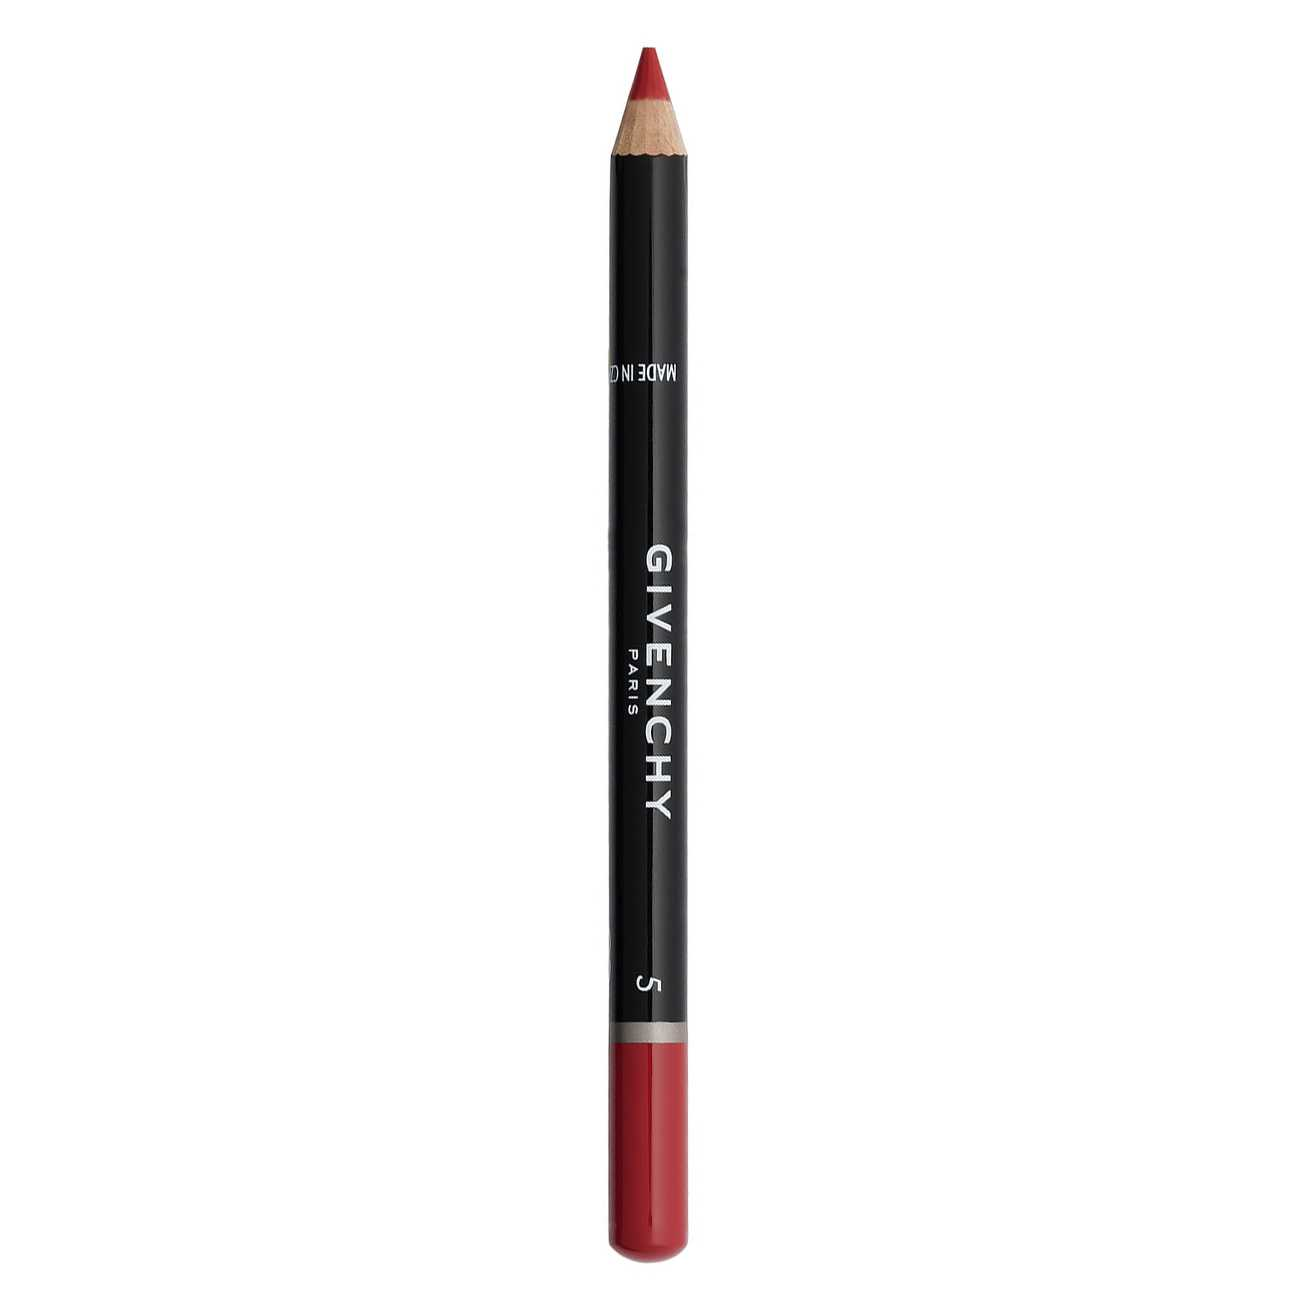 Lip Liner 2 G Rouge 5 Givenchy imagine 2021 bestvalue.eu